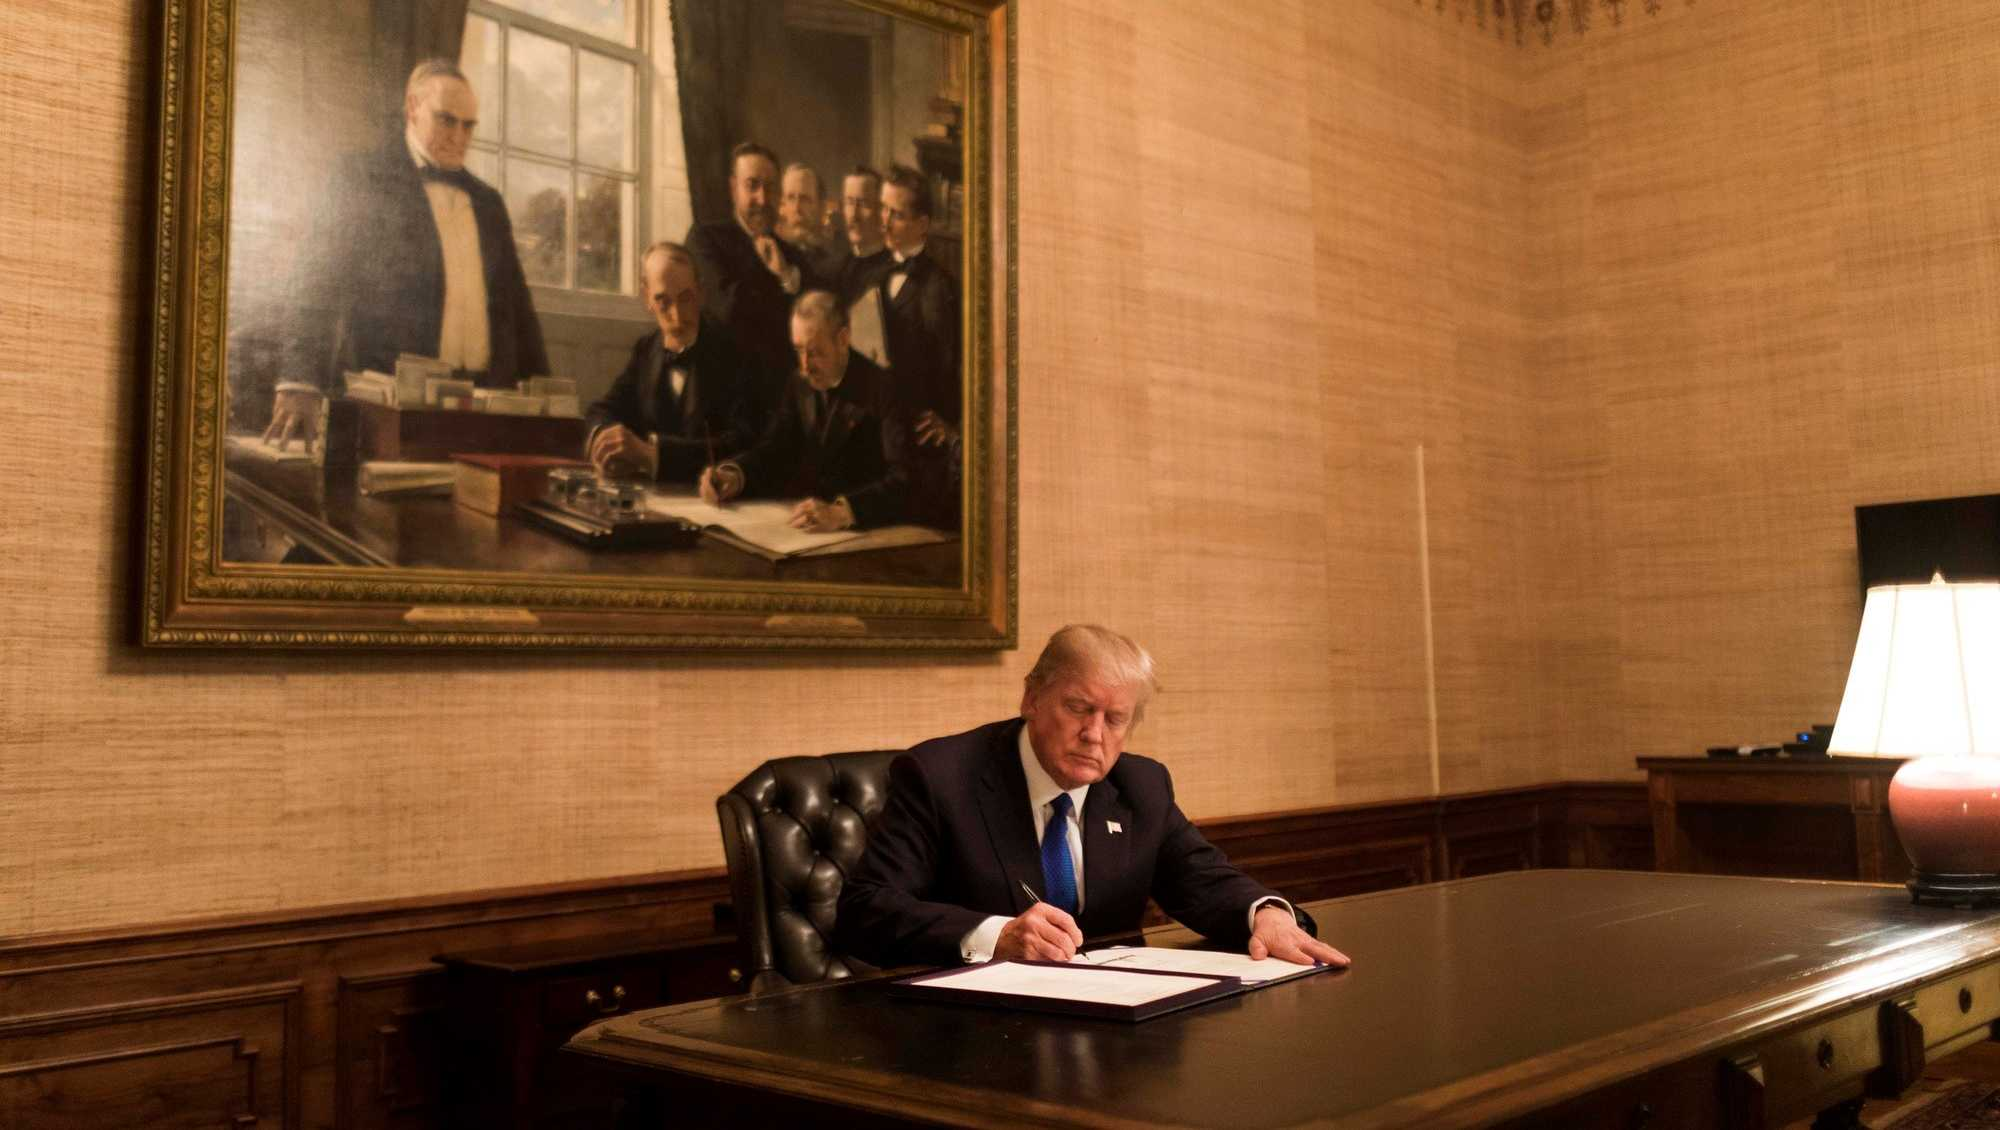 President Donald Trump signs H.R. 195 , in the Treaty Room at the White House, Monday January 22, 2018, in Washington, D.C.